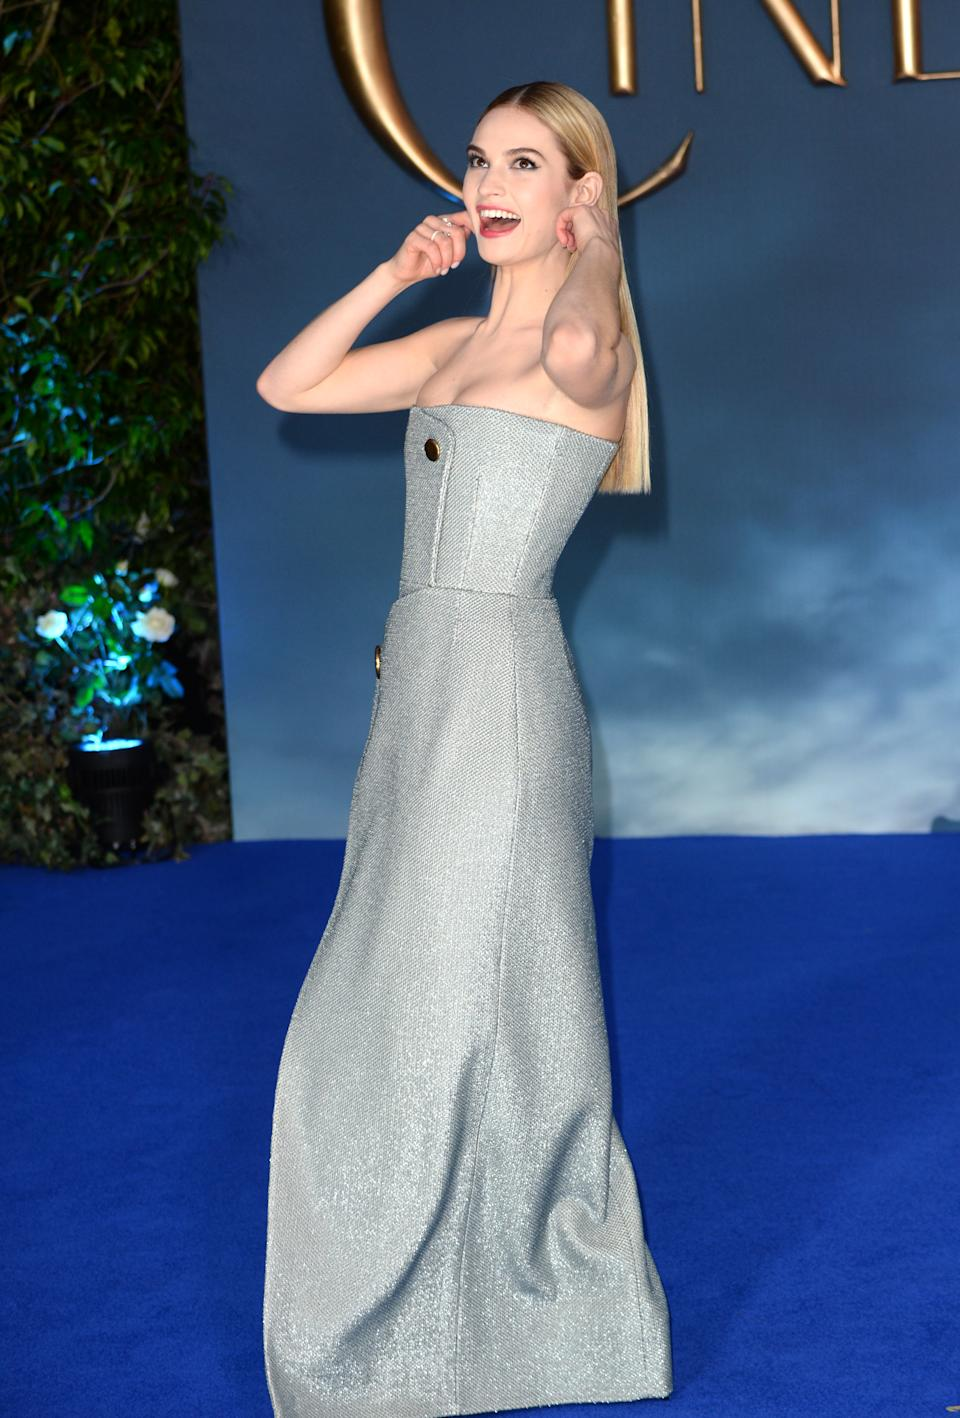 Lily James attends the UK Premiere of Disney's Cinderella held at the Odeon cinema in Leicester Square, London